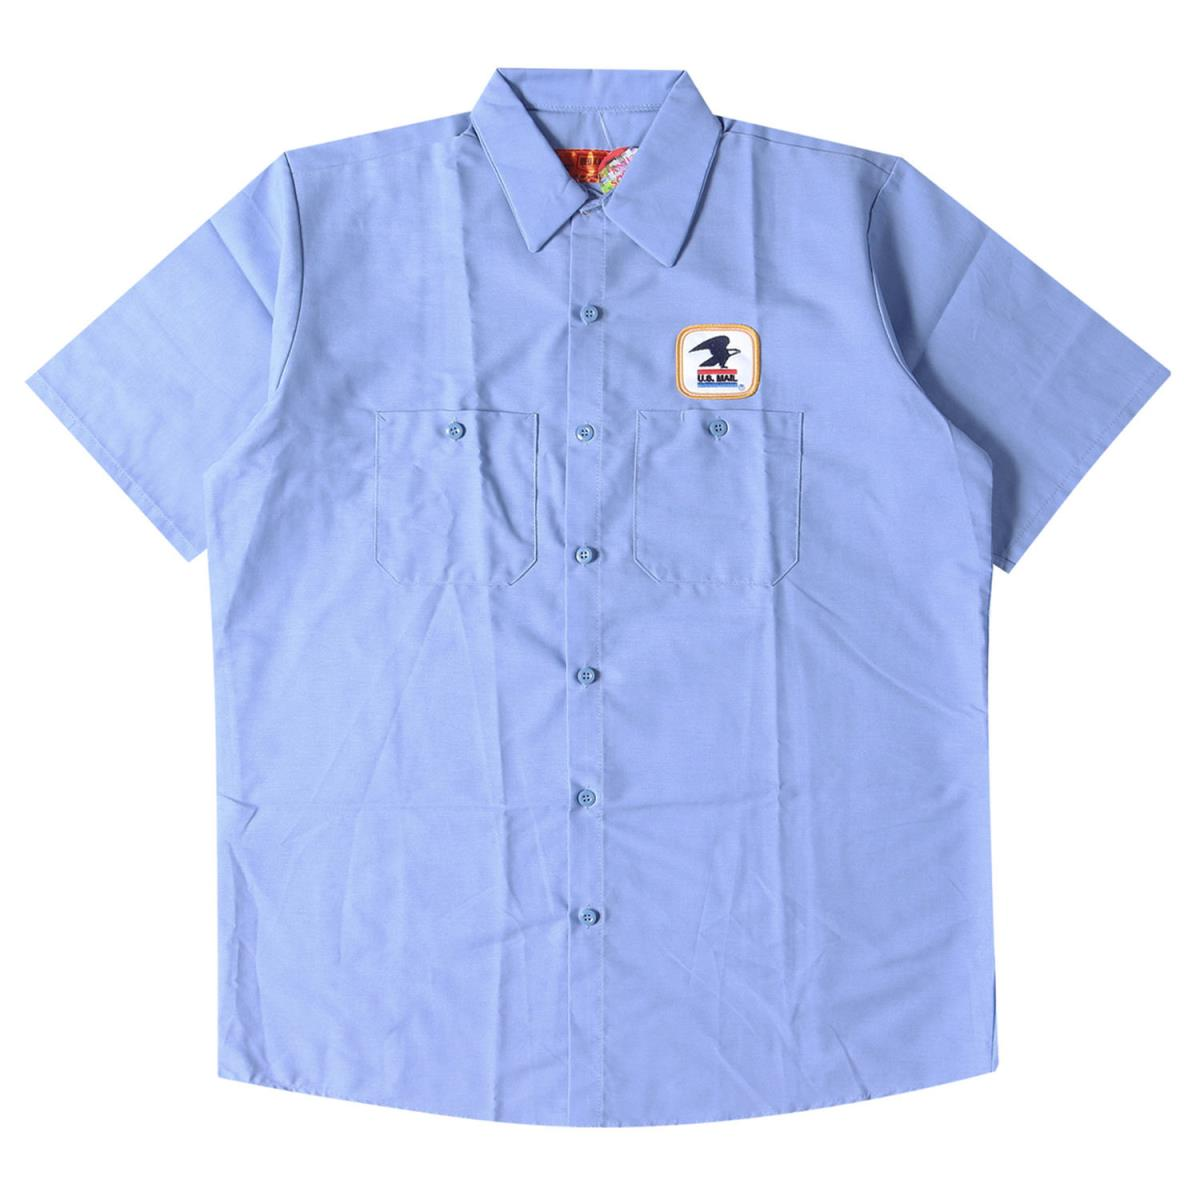 トップス, カジュアルシャツ Anti Social Social Club USPS Work Shirt 20SS L K2958